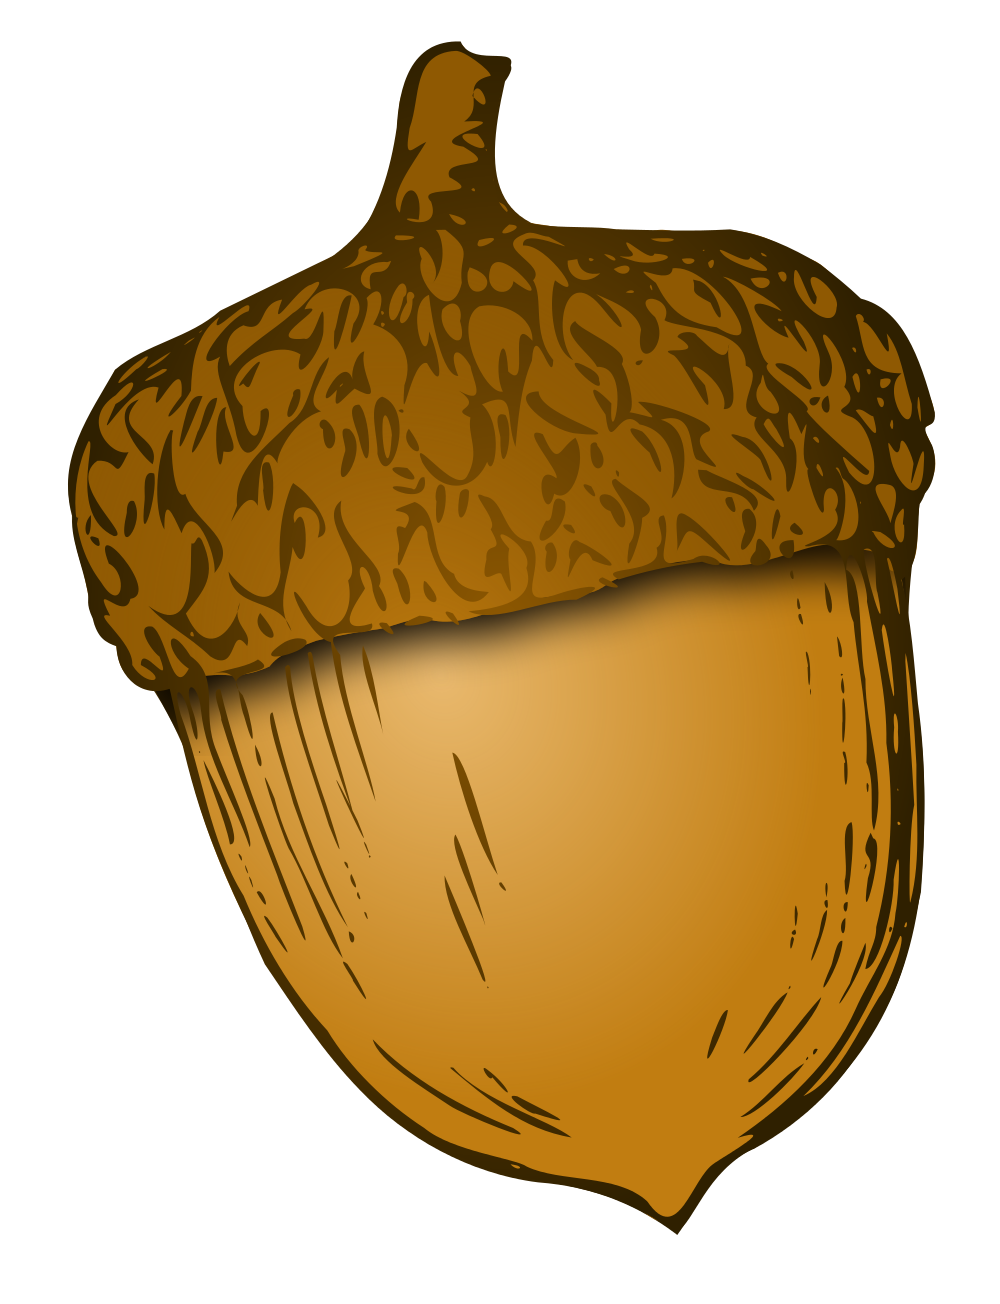 Acorn svg. File wikivoc wikimedia commons